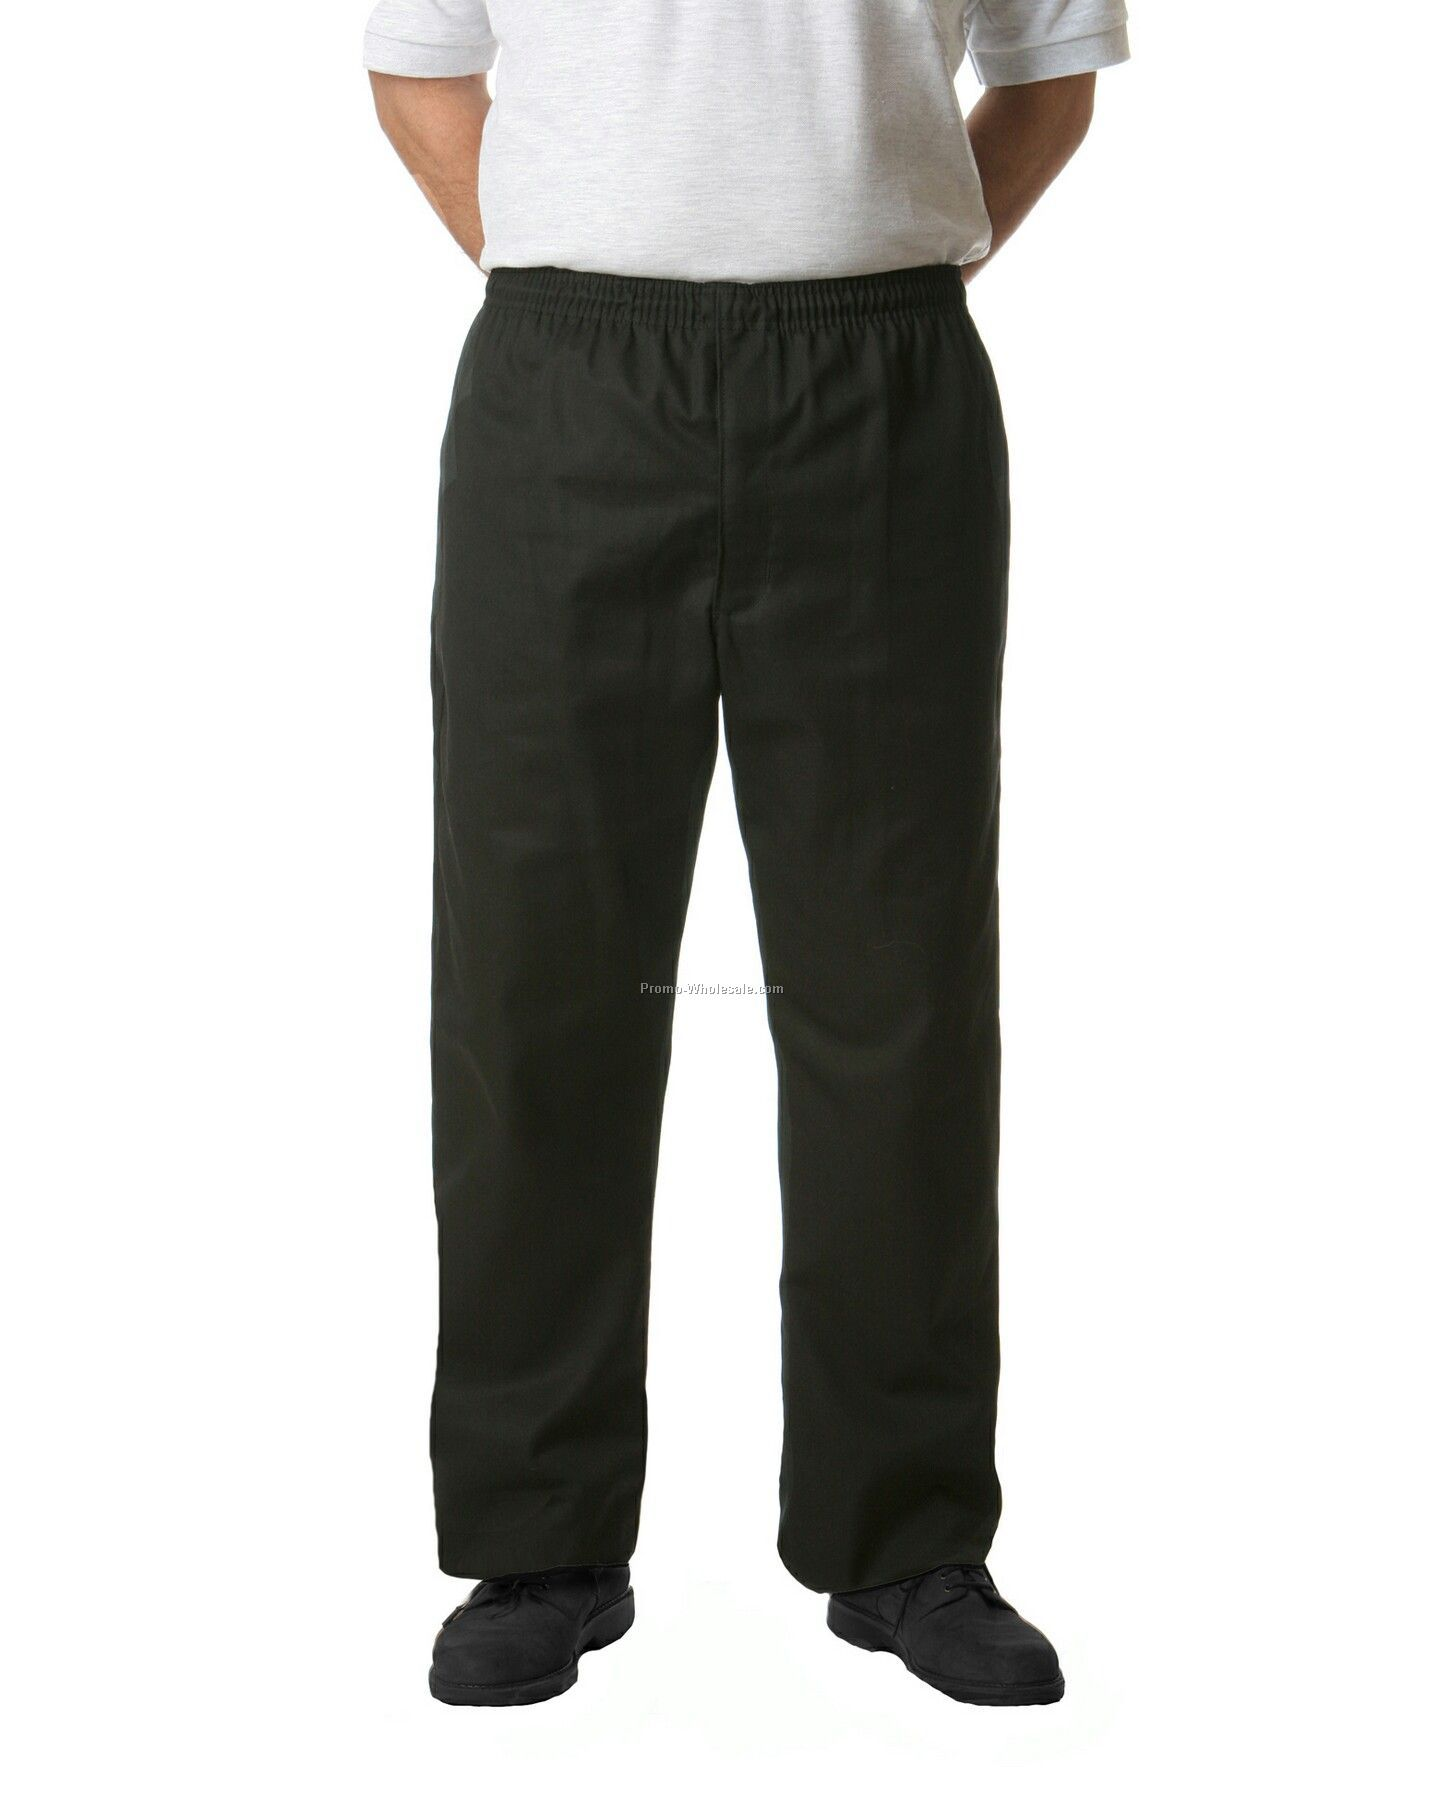 Chef Baggies Pants (Medium/ Black)